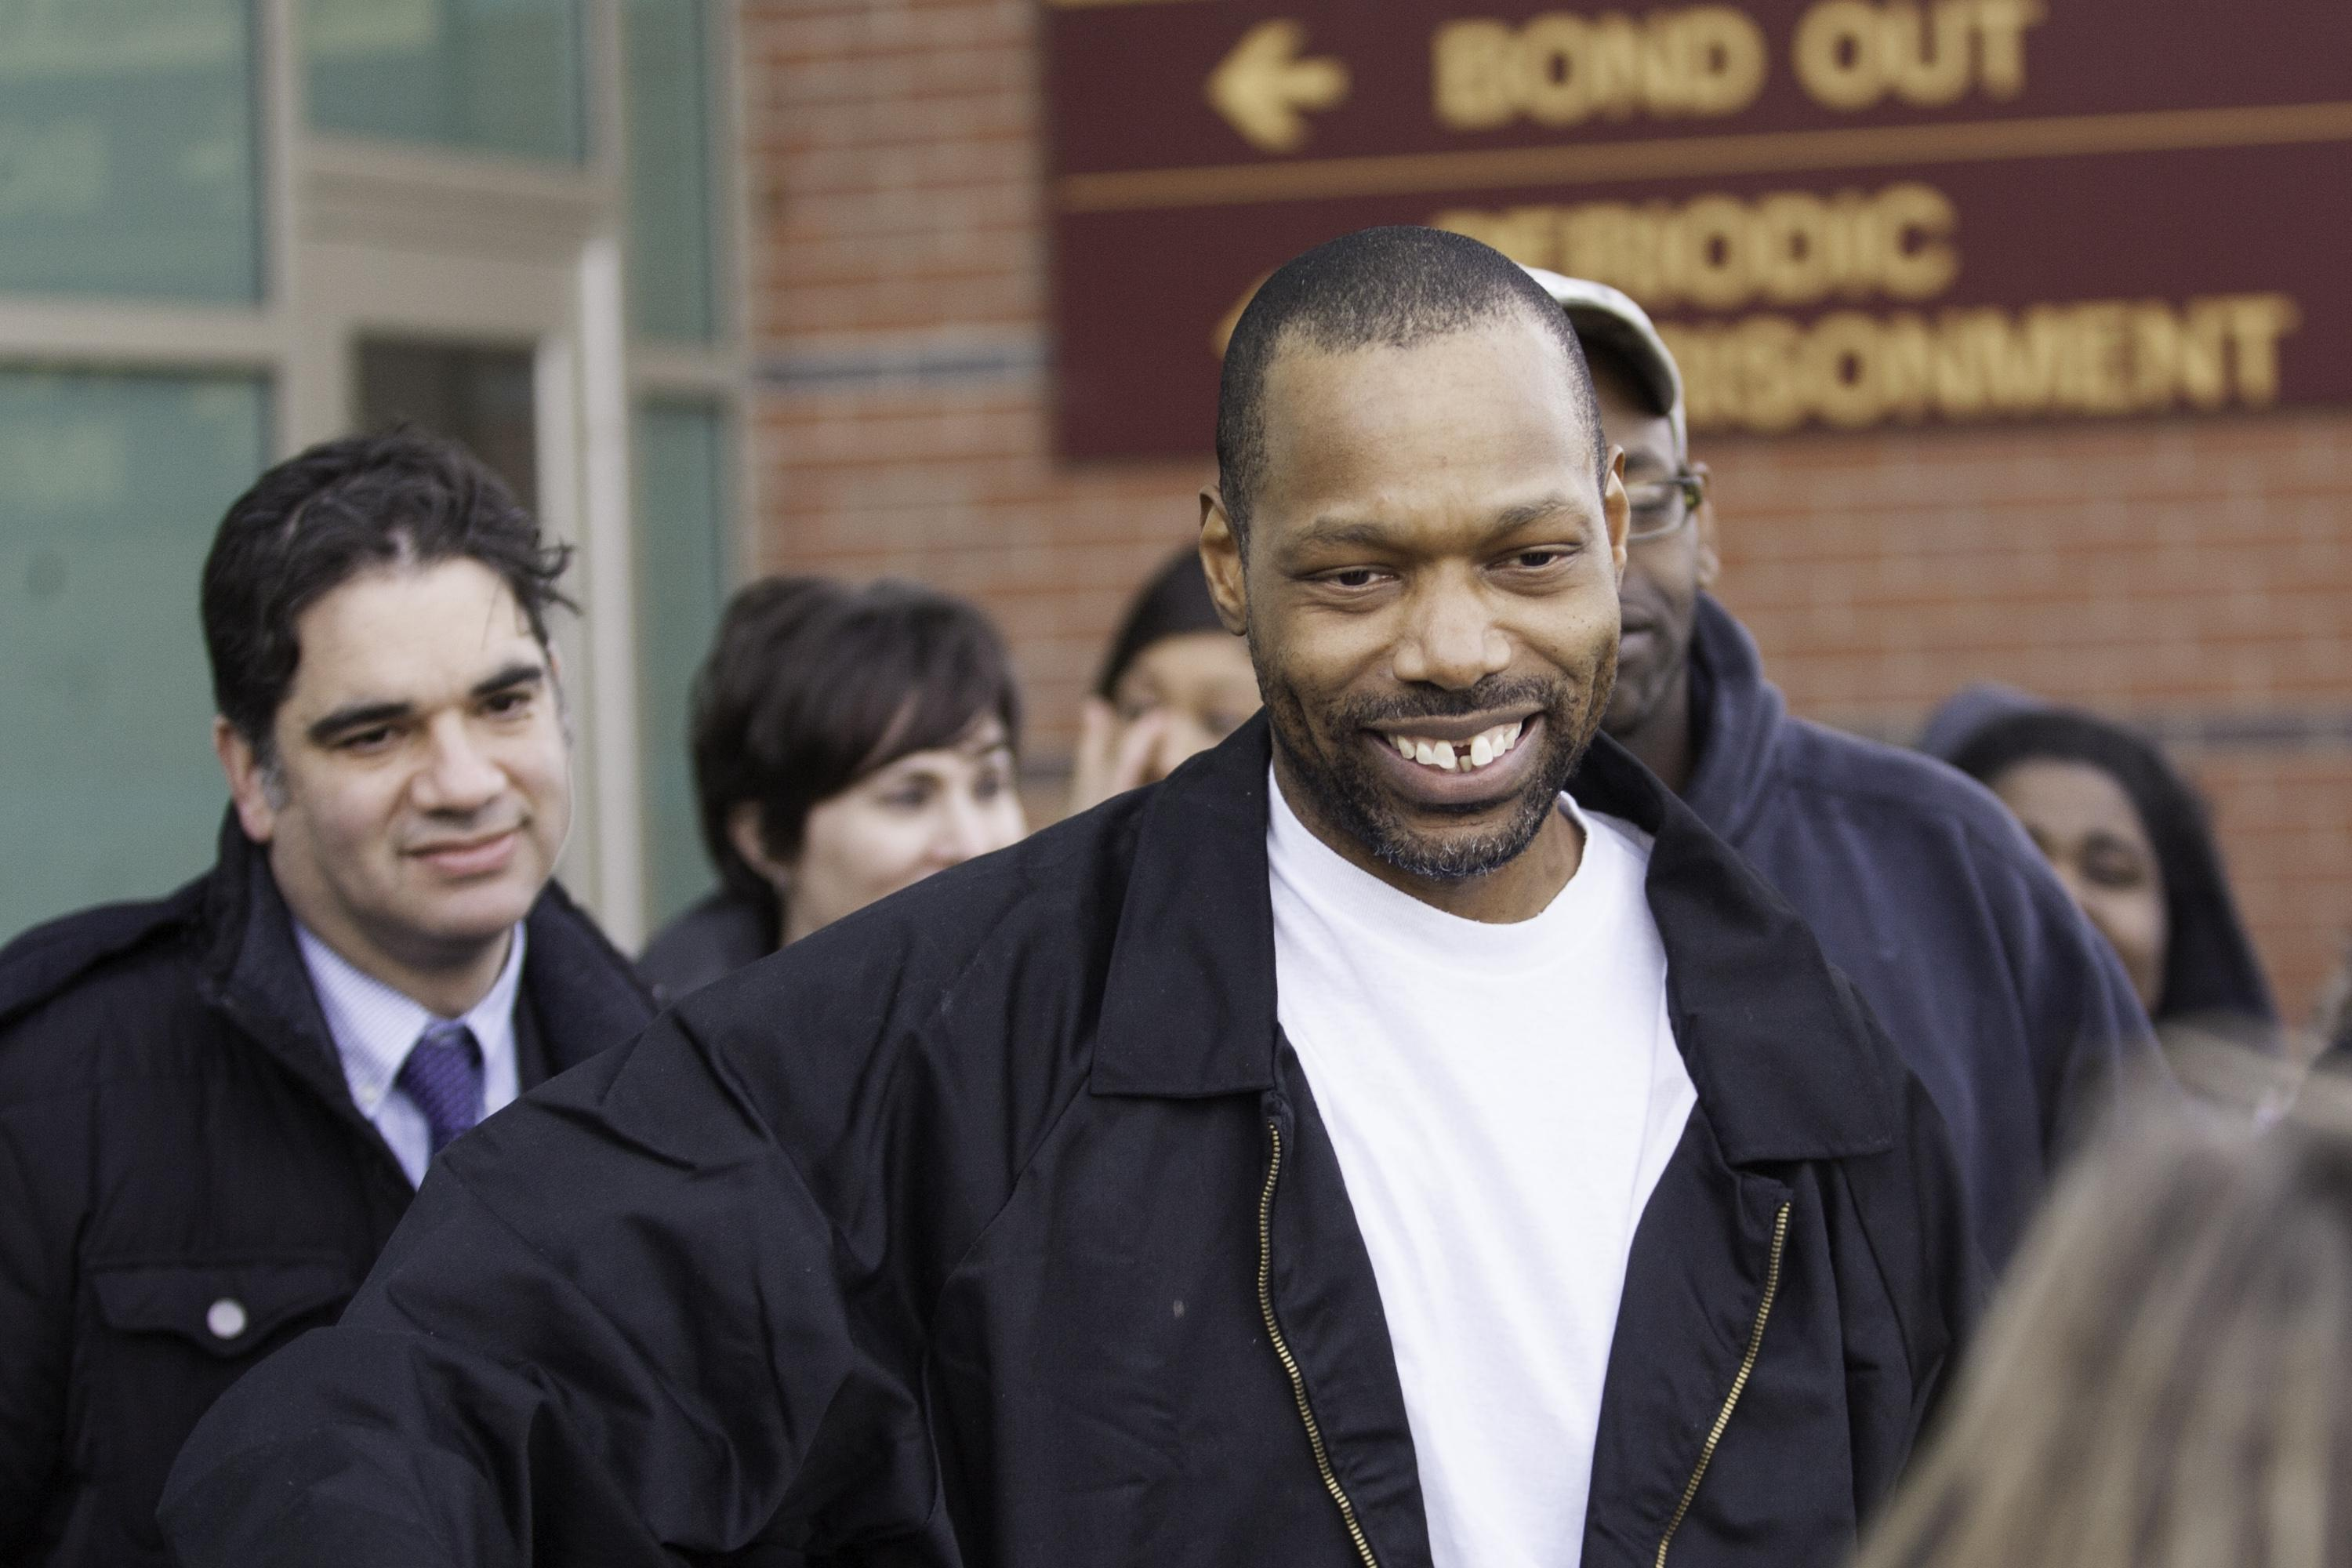 Rockford Man Wrongfully Convicted Of Murder Sues City photo